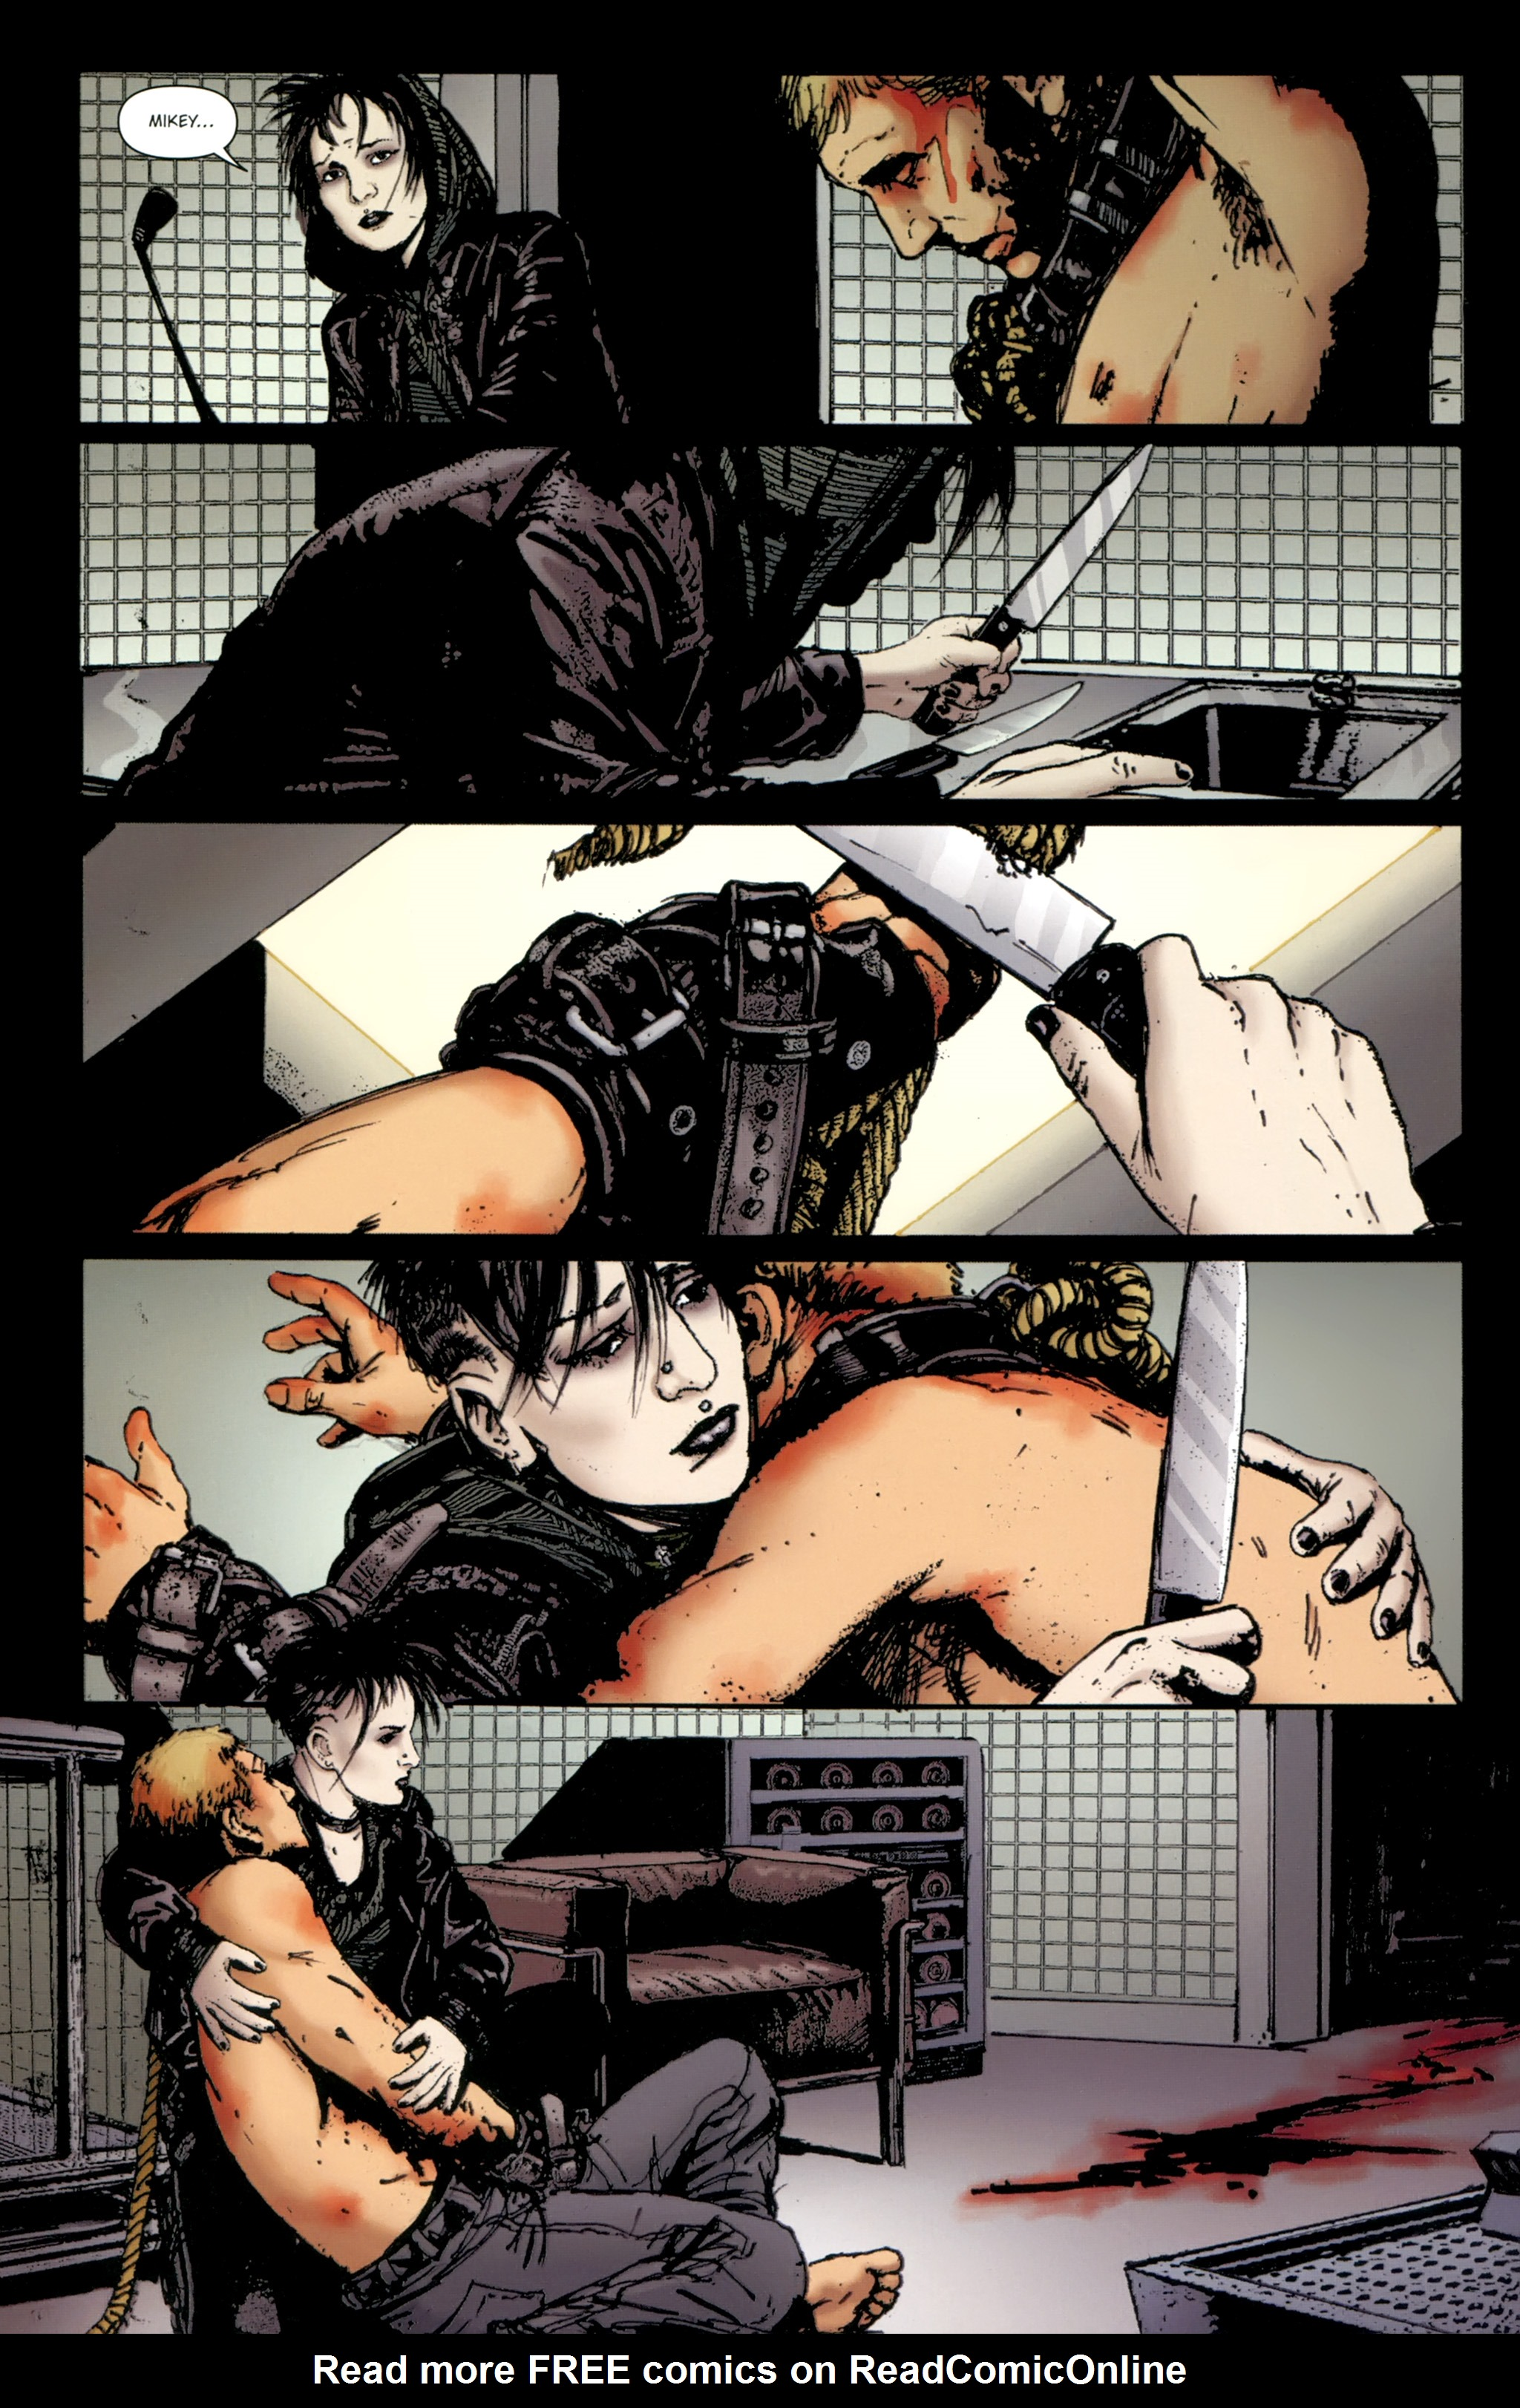 Read online The Girl With the Dragon Tattoo comic -  Issue # TPB 2 - 102